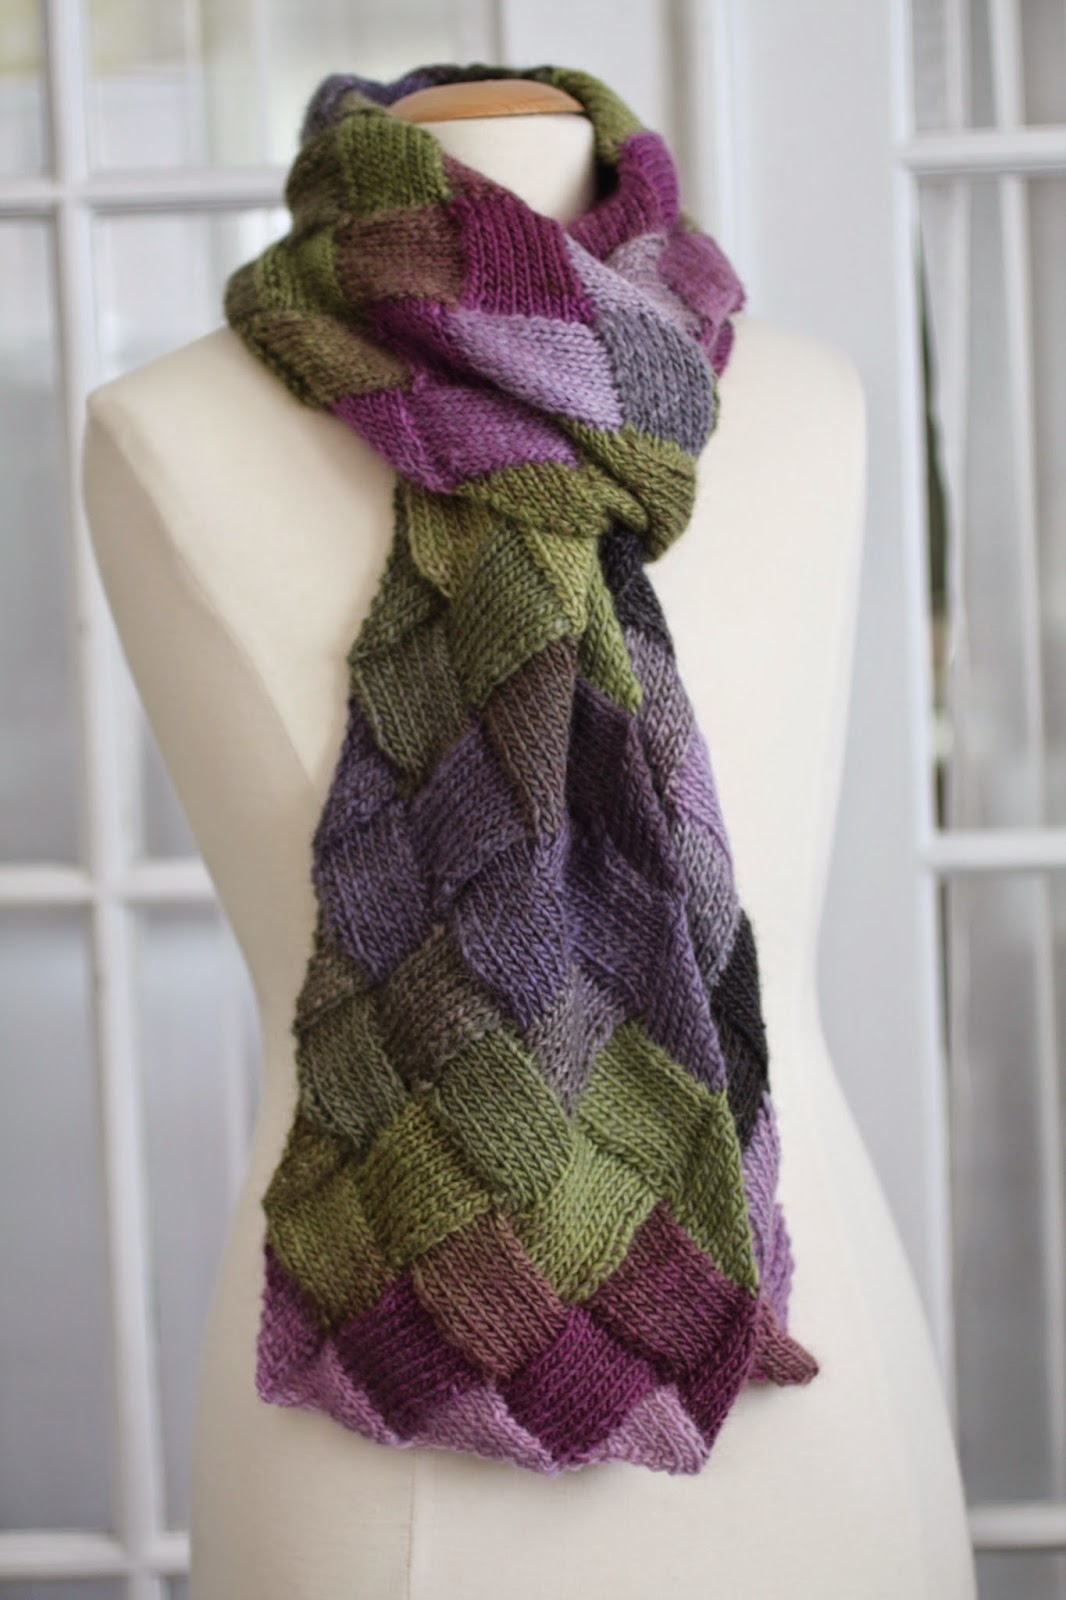 Free Knitting Patterns Entrelac Scarf : Brooketrout Designs: Entrelac Scarf